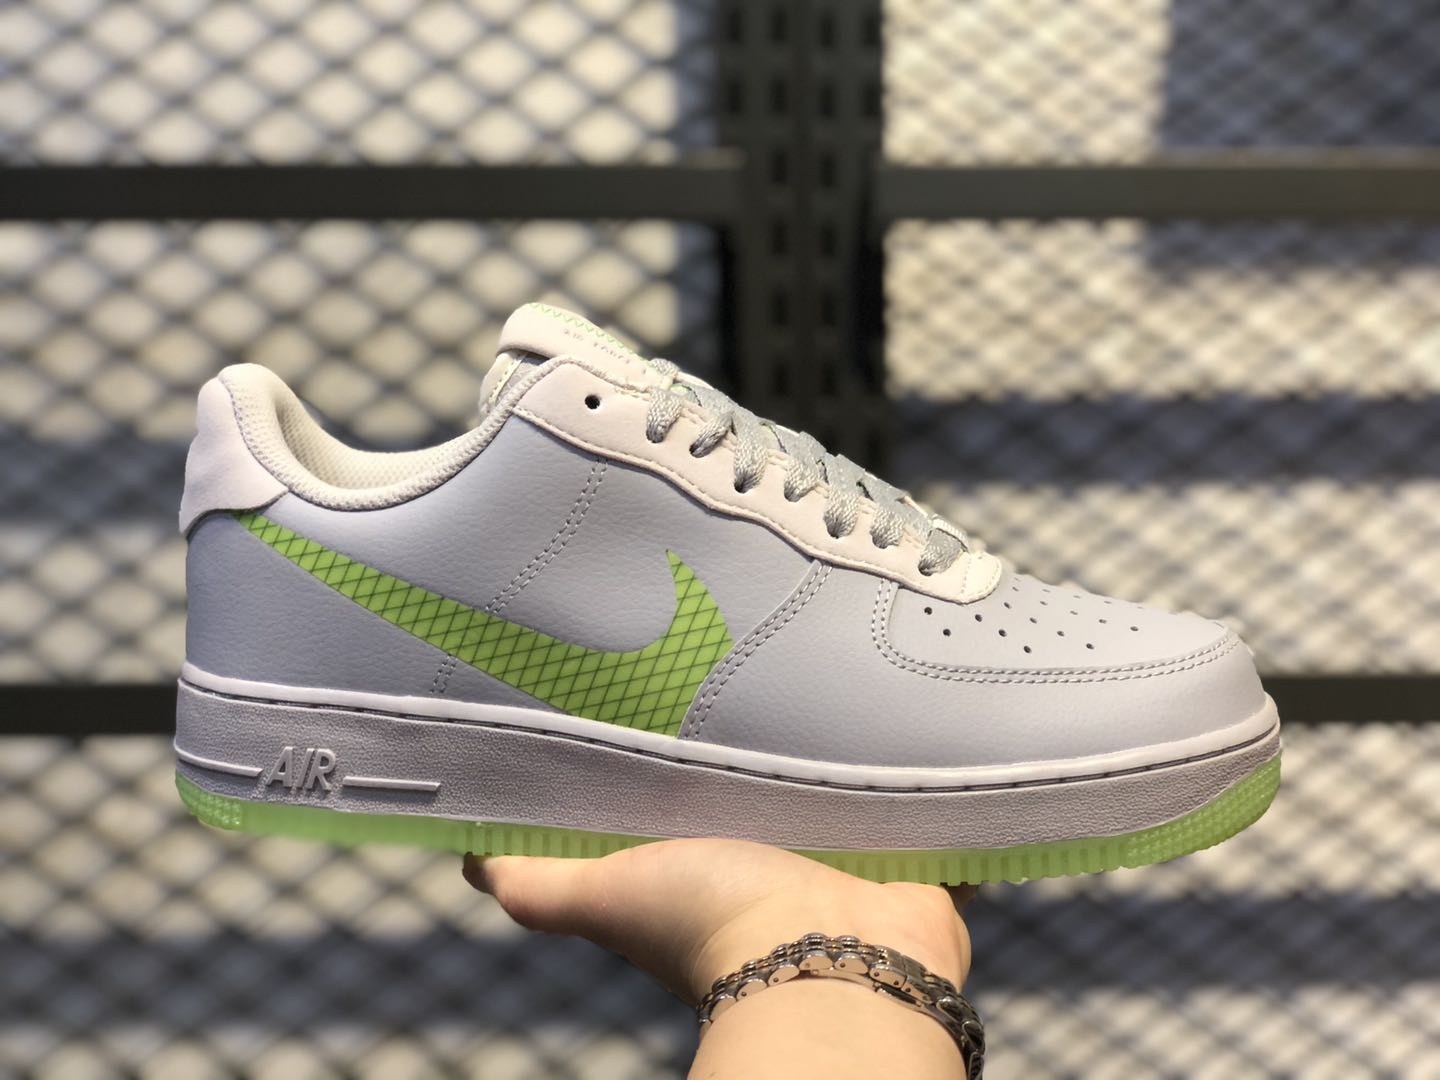 Nike Air Force 1 Low Wolf Grey/Ghost Green CD0888-002